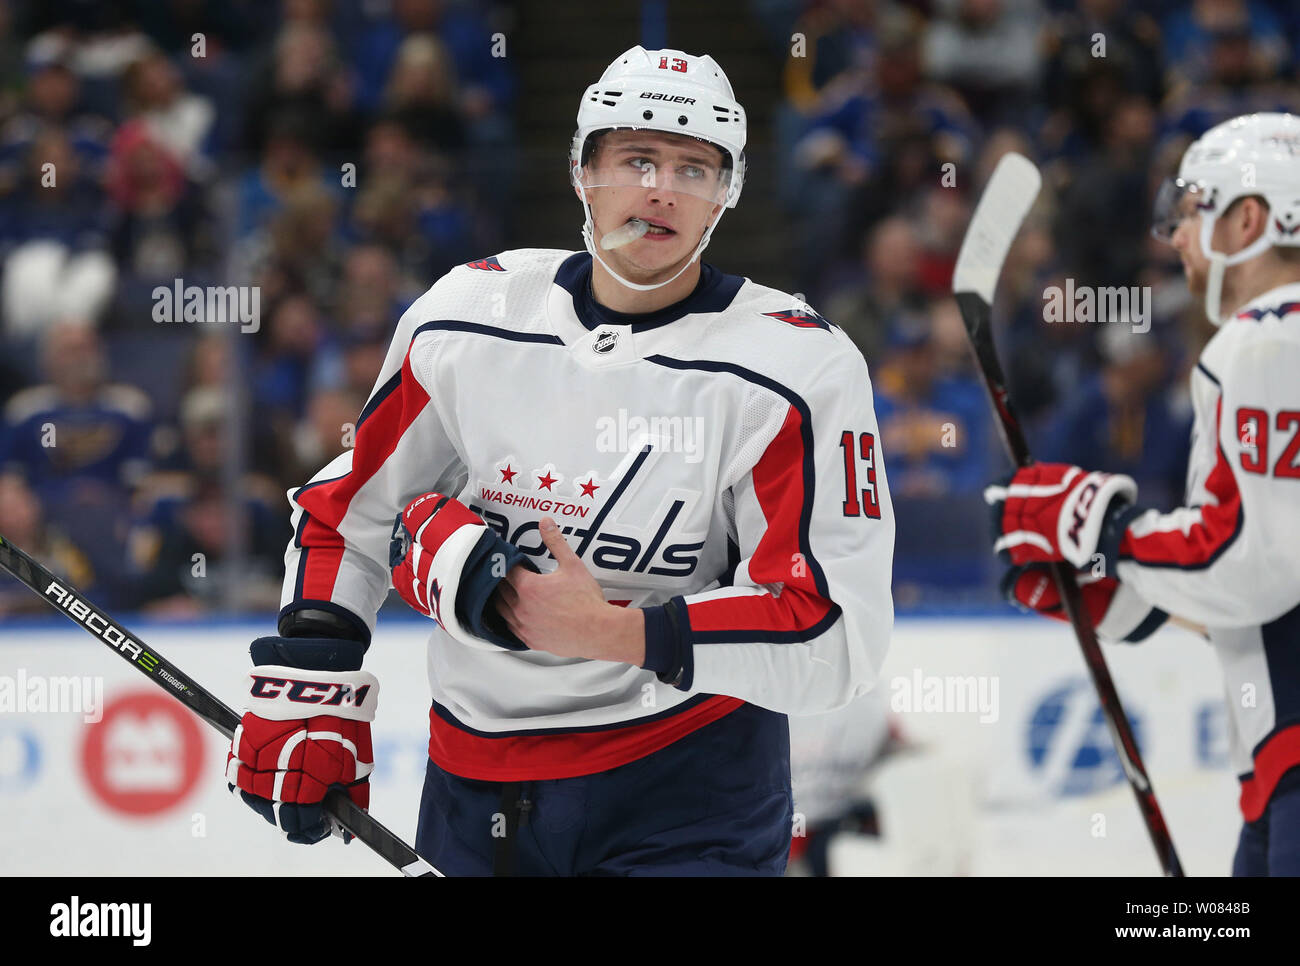 wholesale dealer 69da2 c43c6 Washington Capitals Jakub Vrana of the Czech Republic skates ...